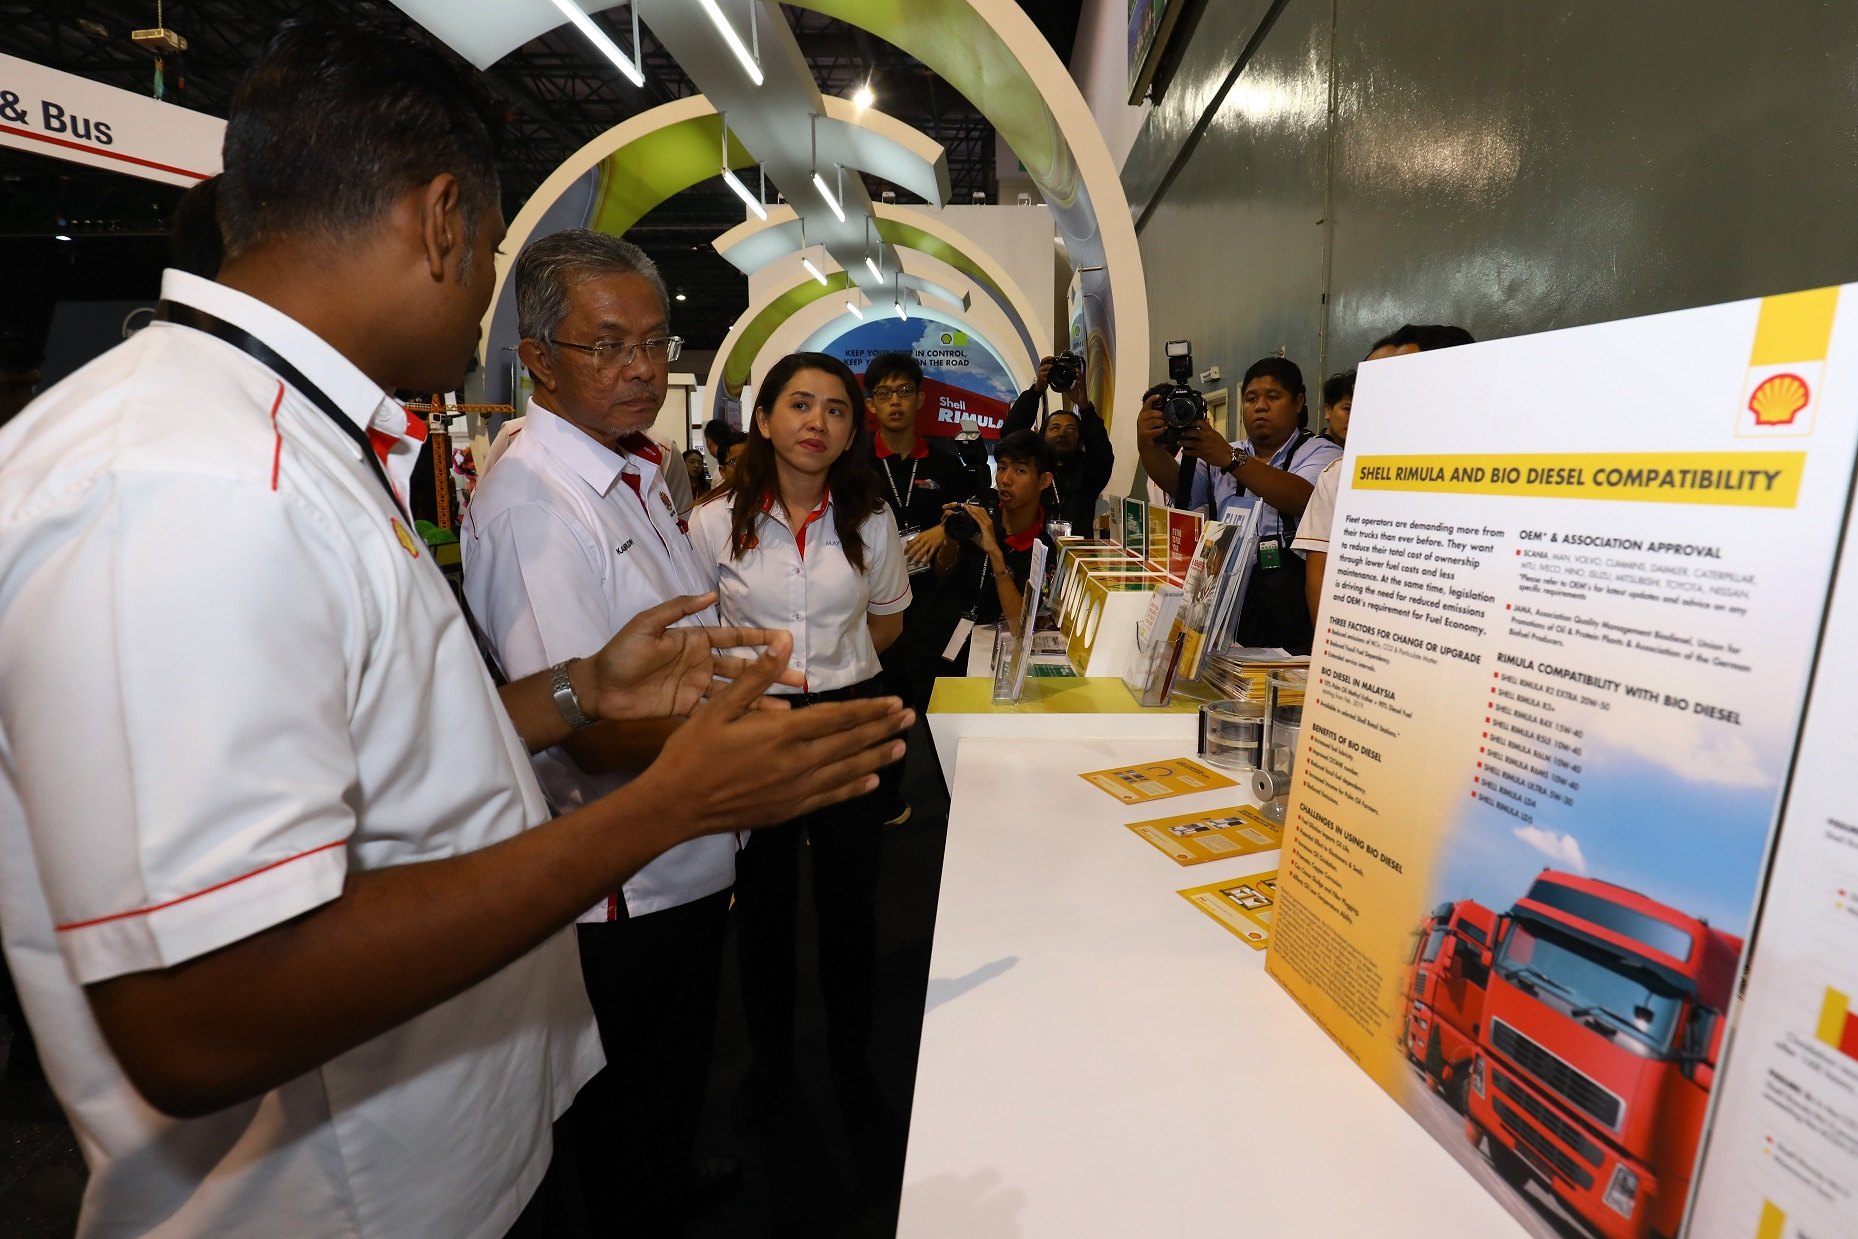 YB Deputy Minister of Transport (2nd left) being briefed at the Shell Pavilion